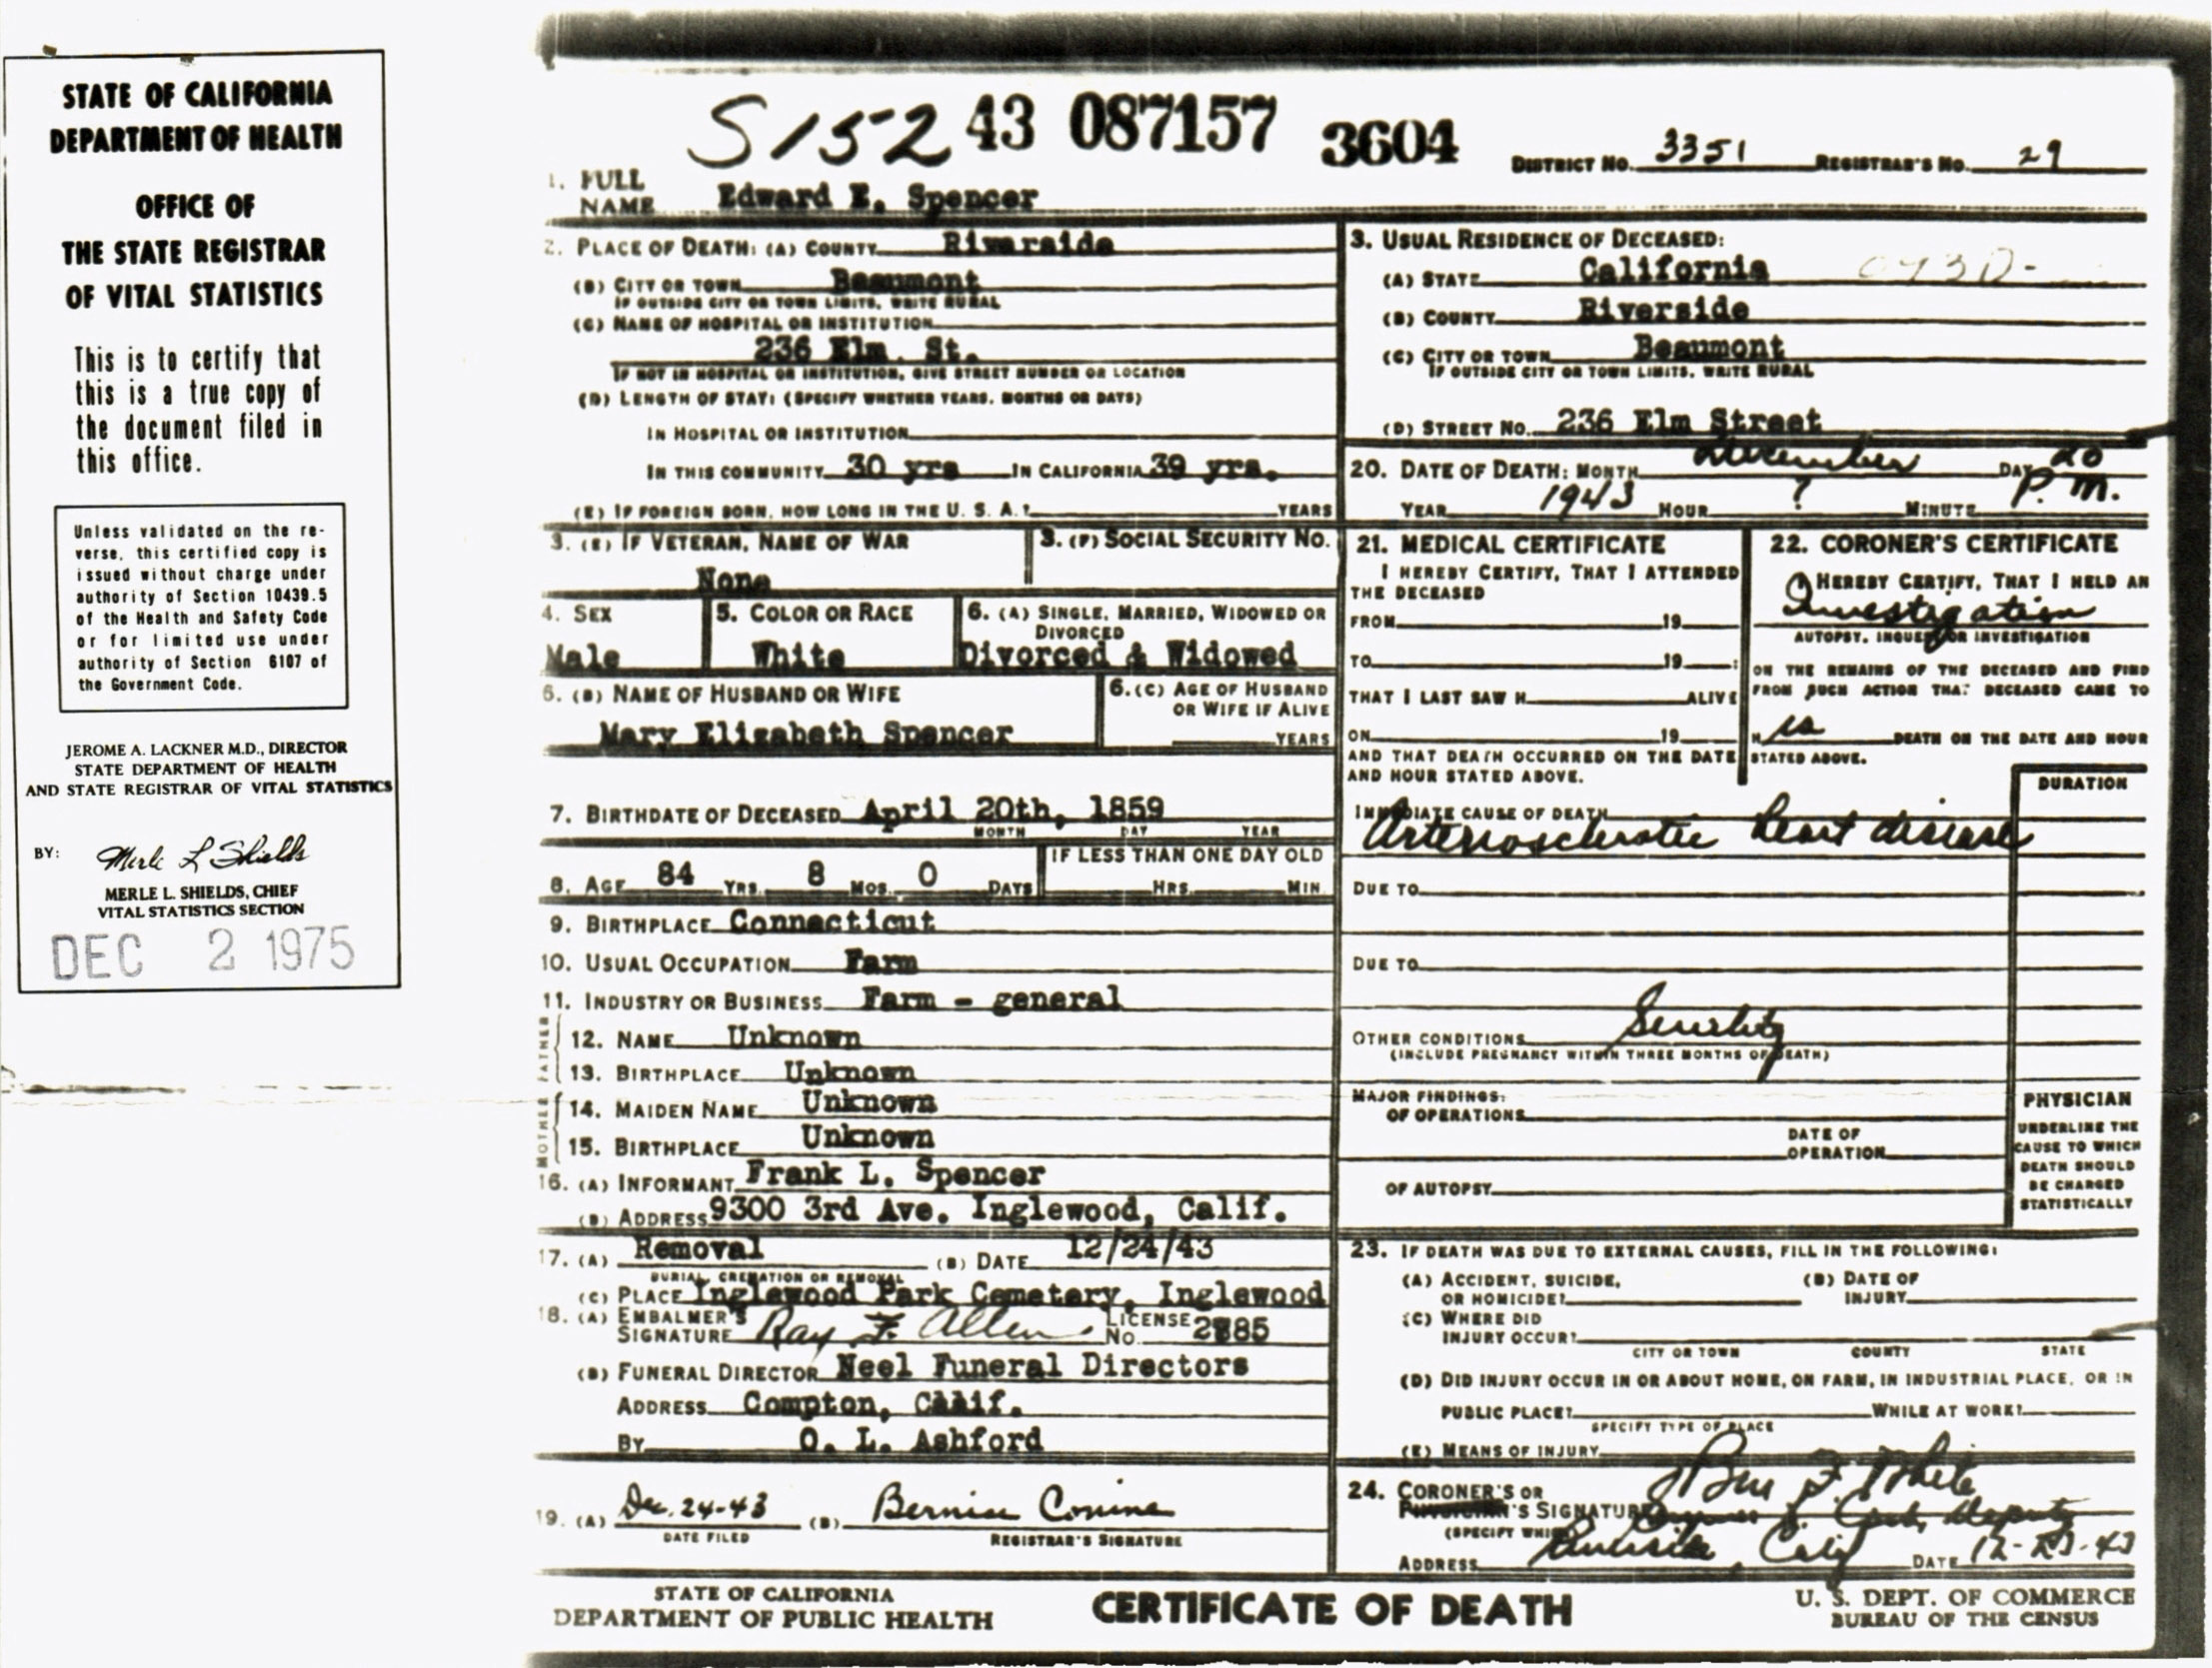 Documents Certificate Of Death For Edward E Spencer My Family Online